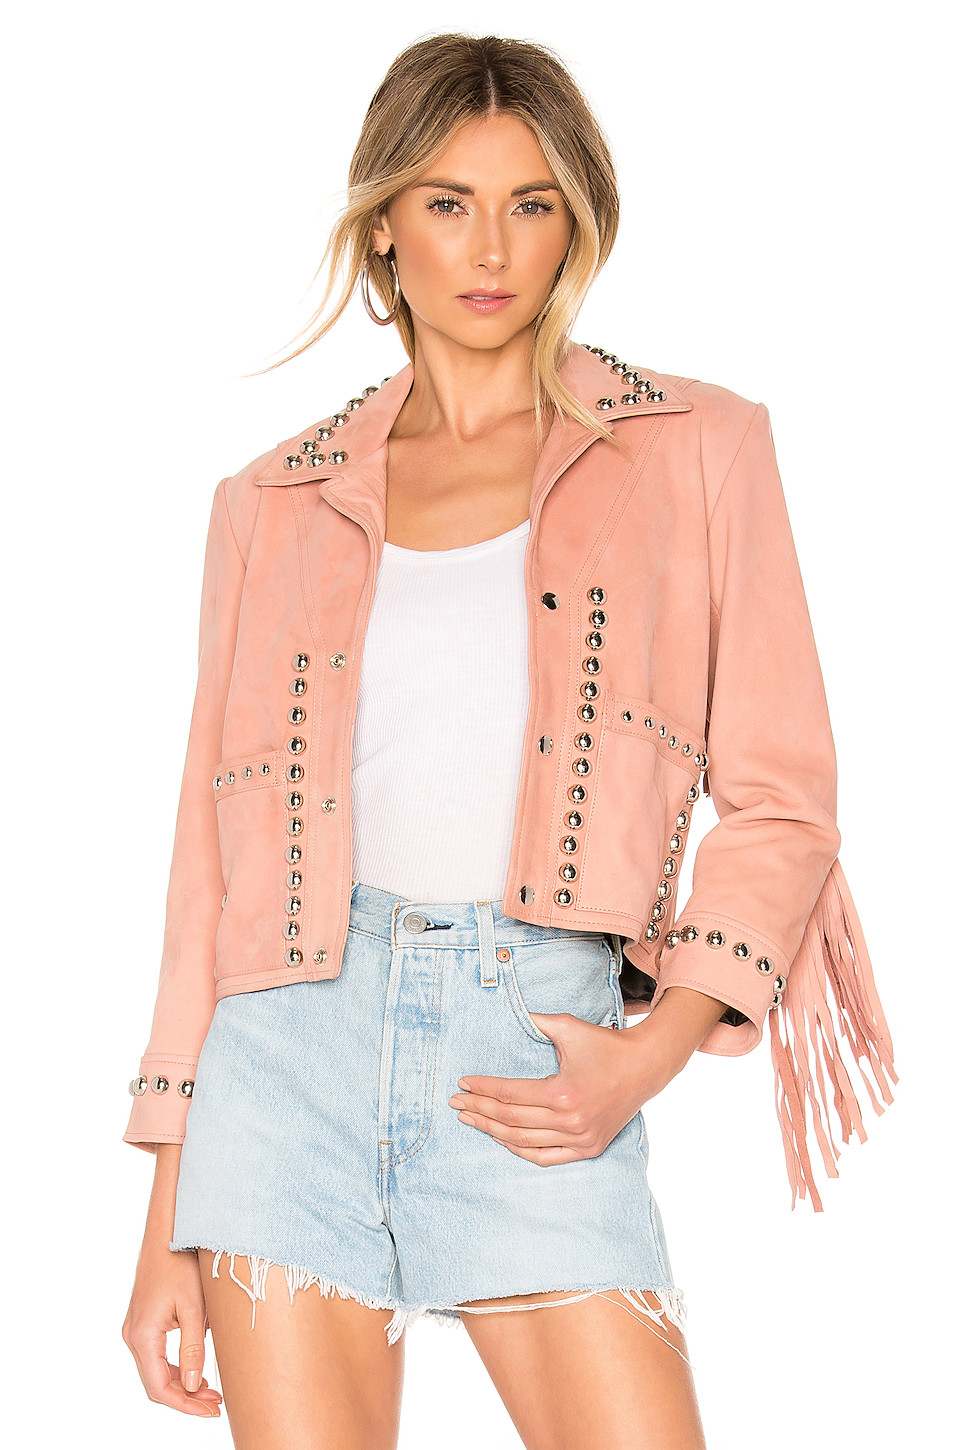 Understated Leather X REVOLVE Lil Darlin Jacket in Dusty Rose